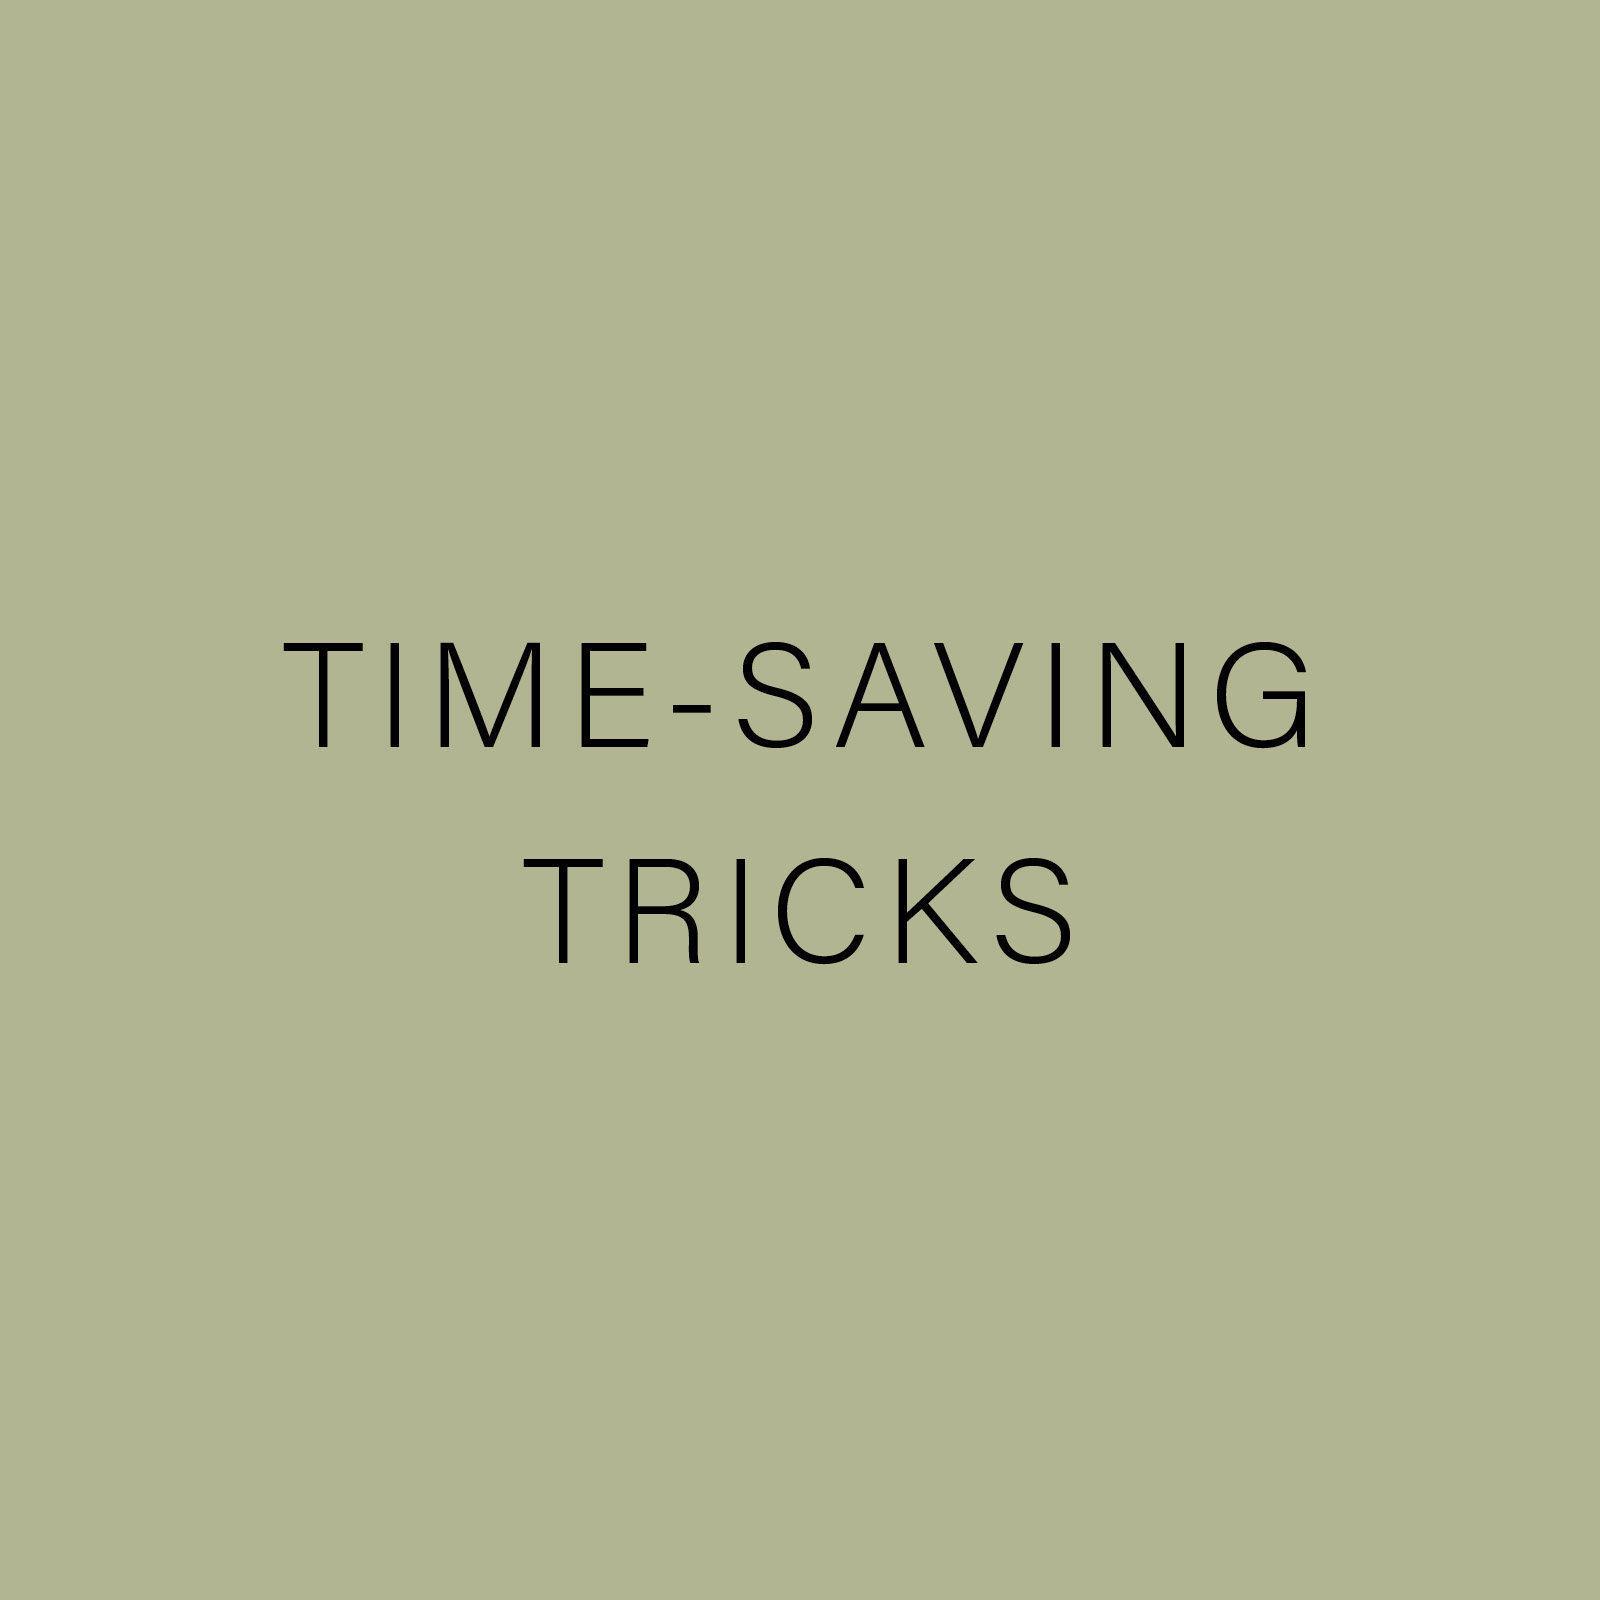 TIME-SAVING TRICKS.jpg